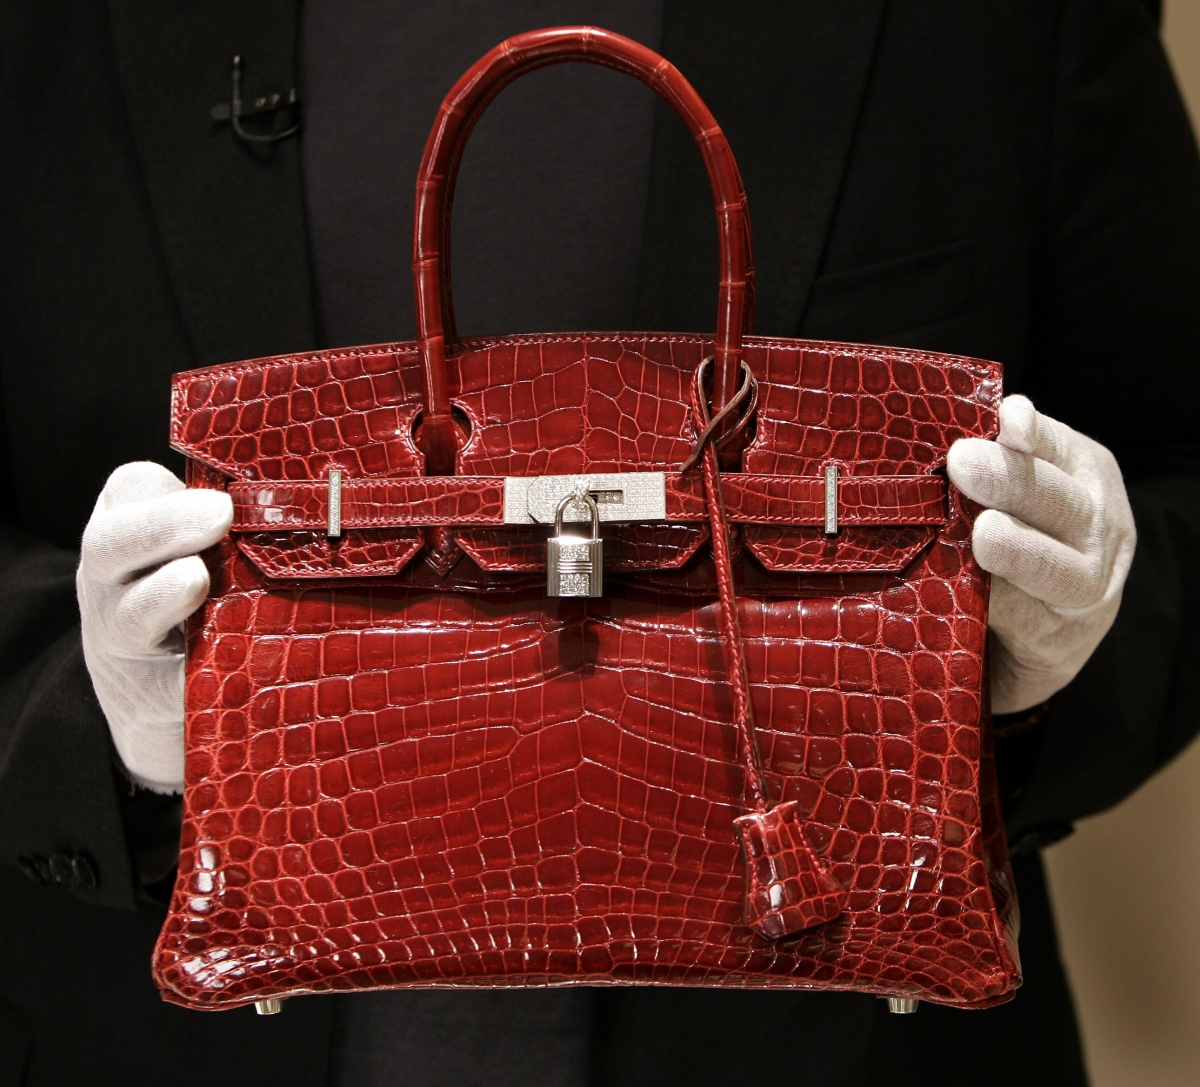 Hermes Birkin bag worth more than gold